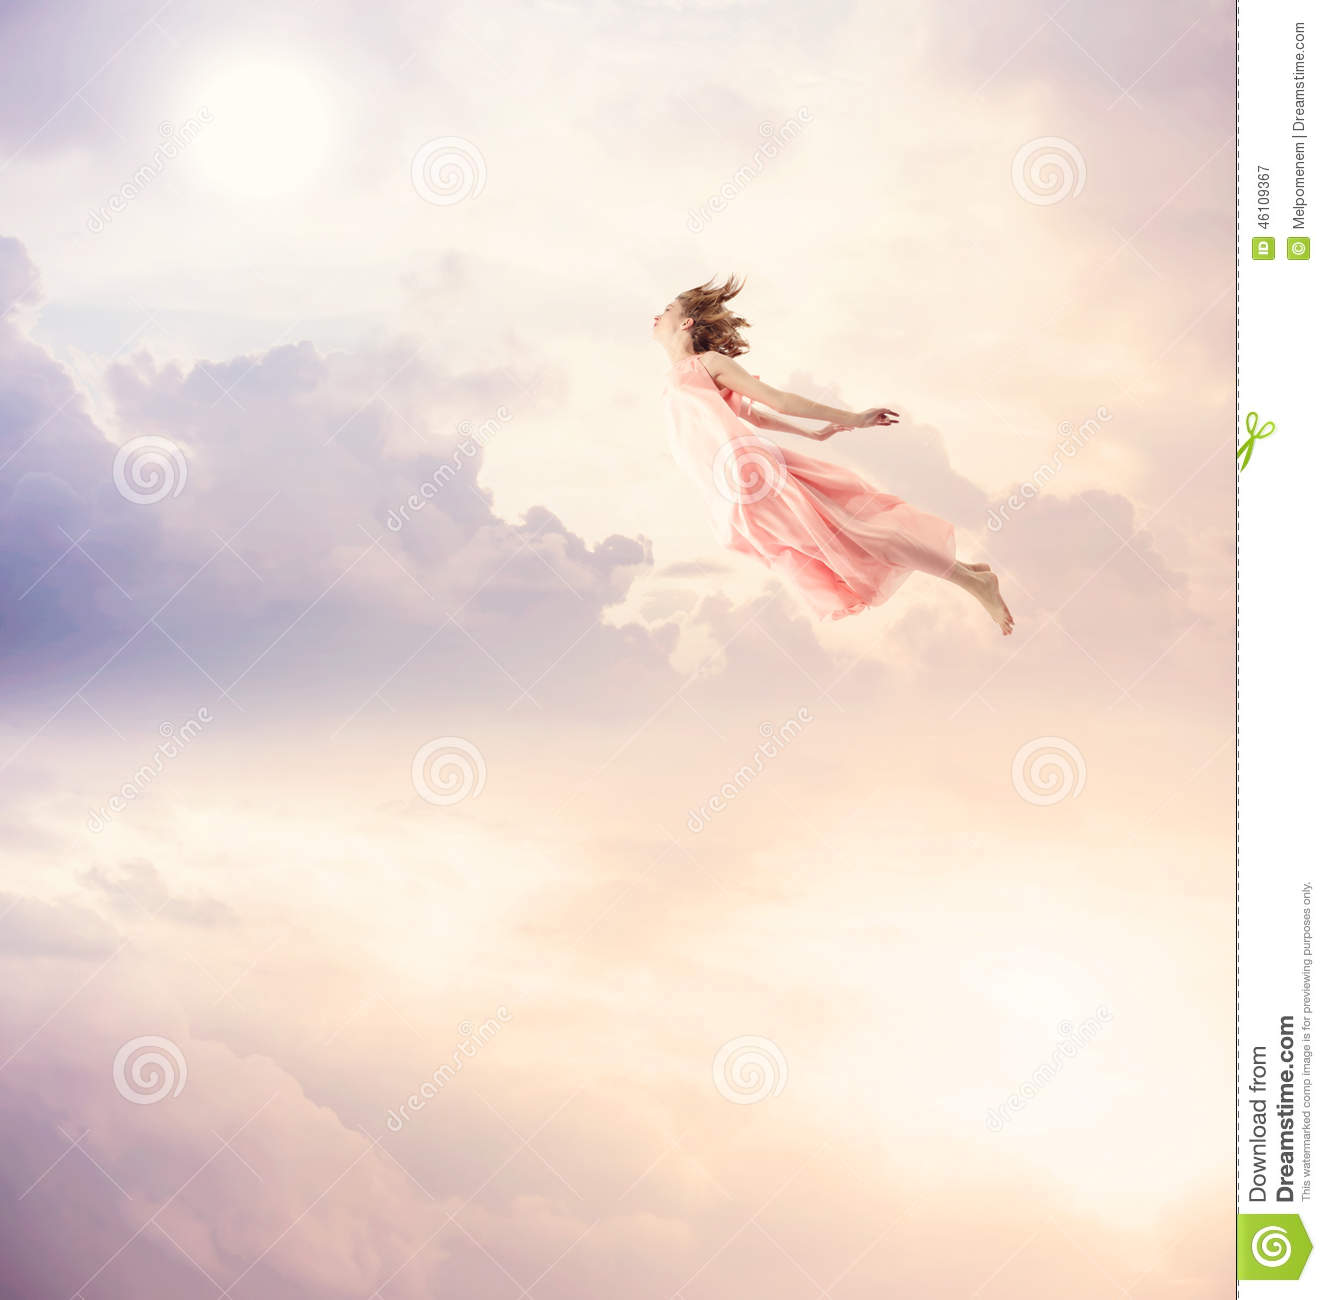 Girl In A Pink Dress Flying In The Sky Stock Photo - Image: 46109367 Superhero Flying Vector